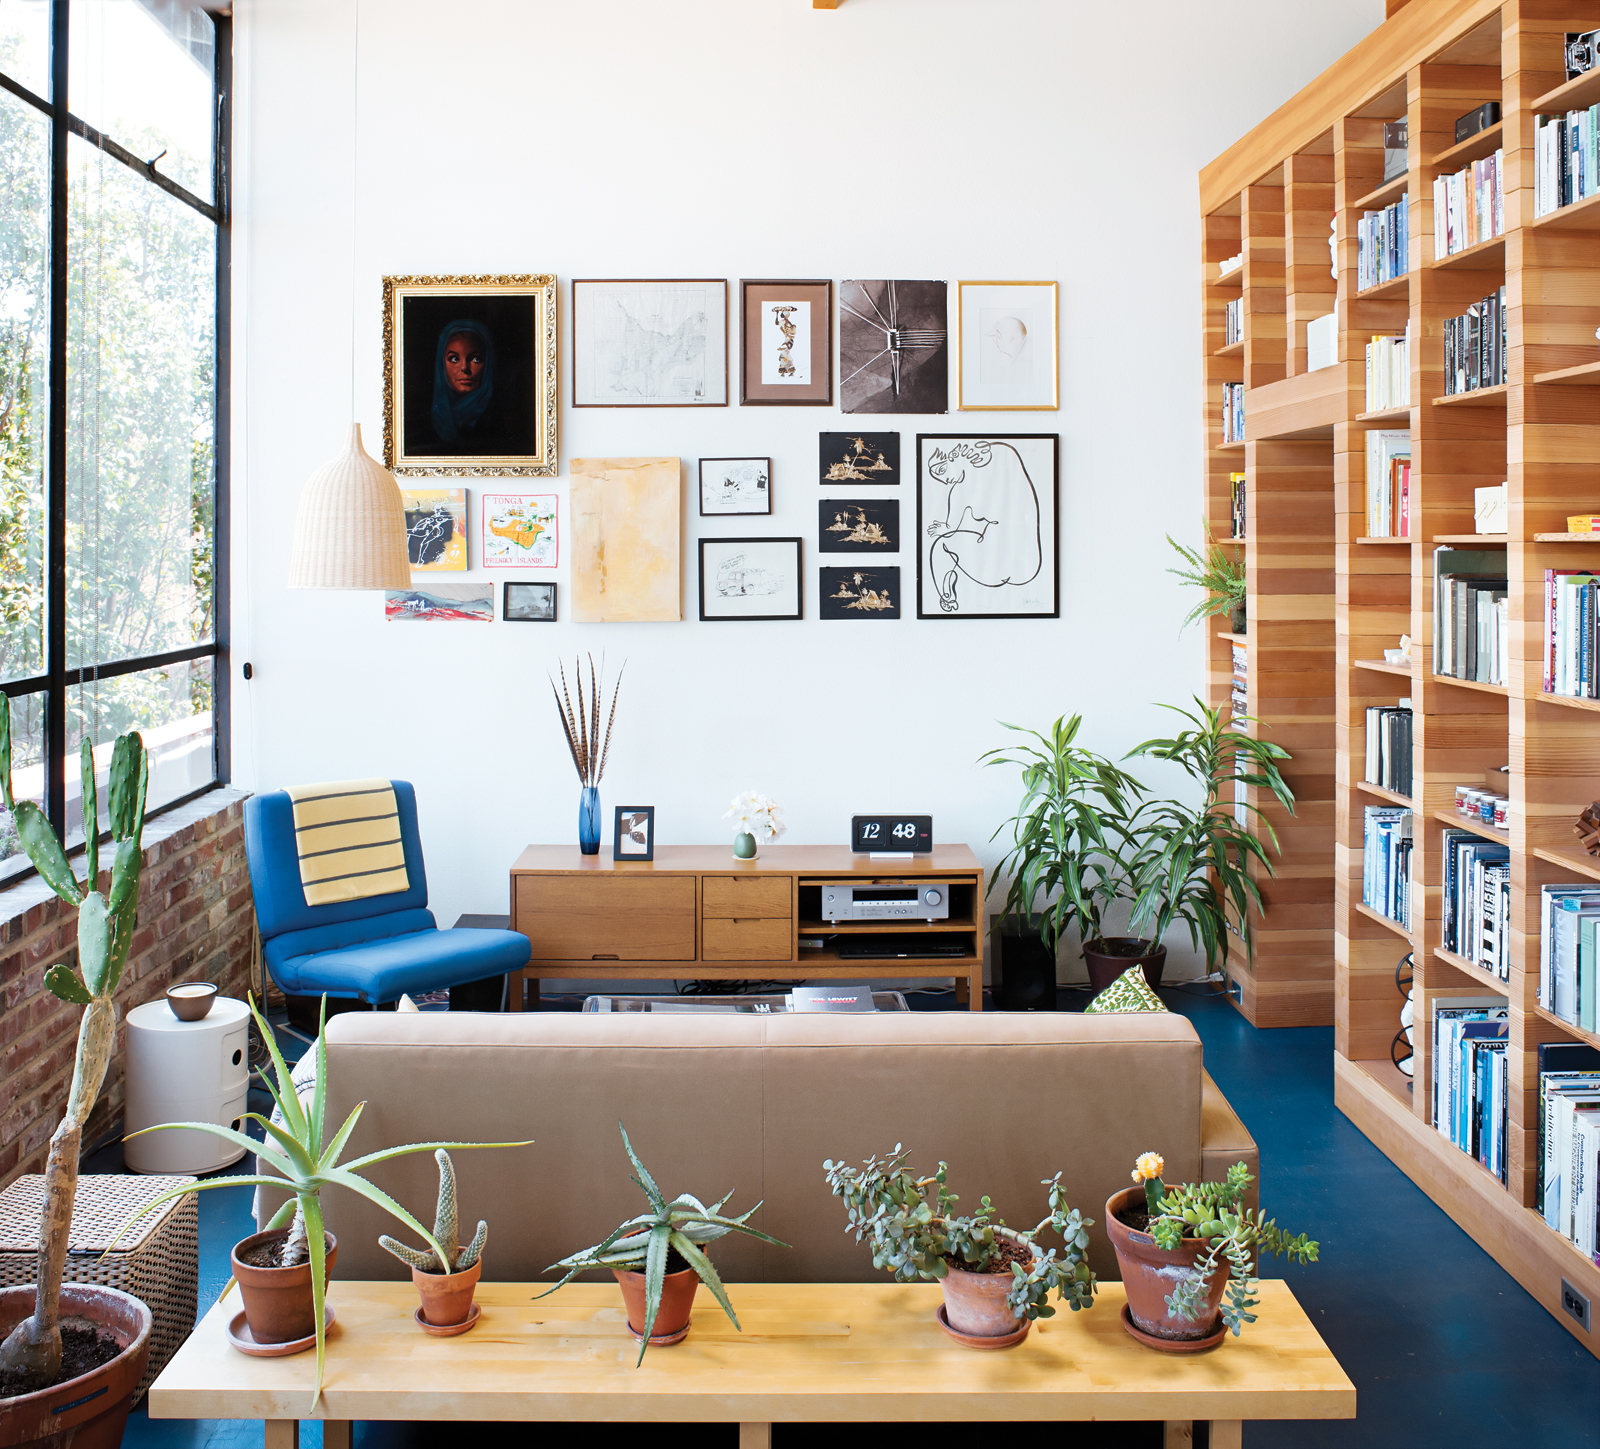 Ordinaire Tips For Creating A Comfortable Living Room | Dwell.